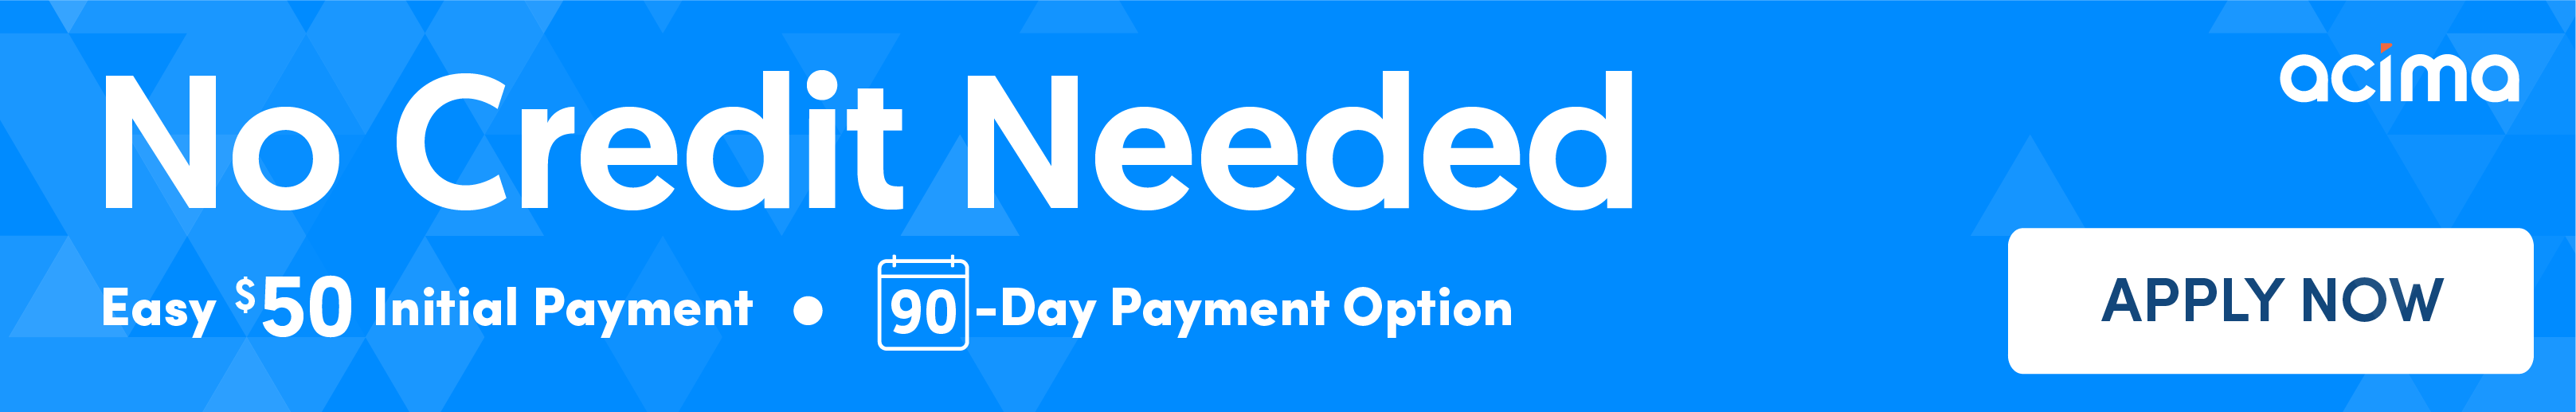 No Credit Needed - Easy $50 initial payment - 90 Day Payment Options - Apply Now